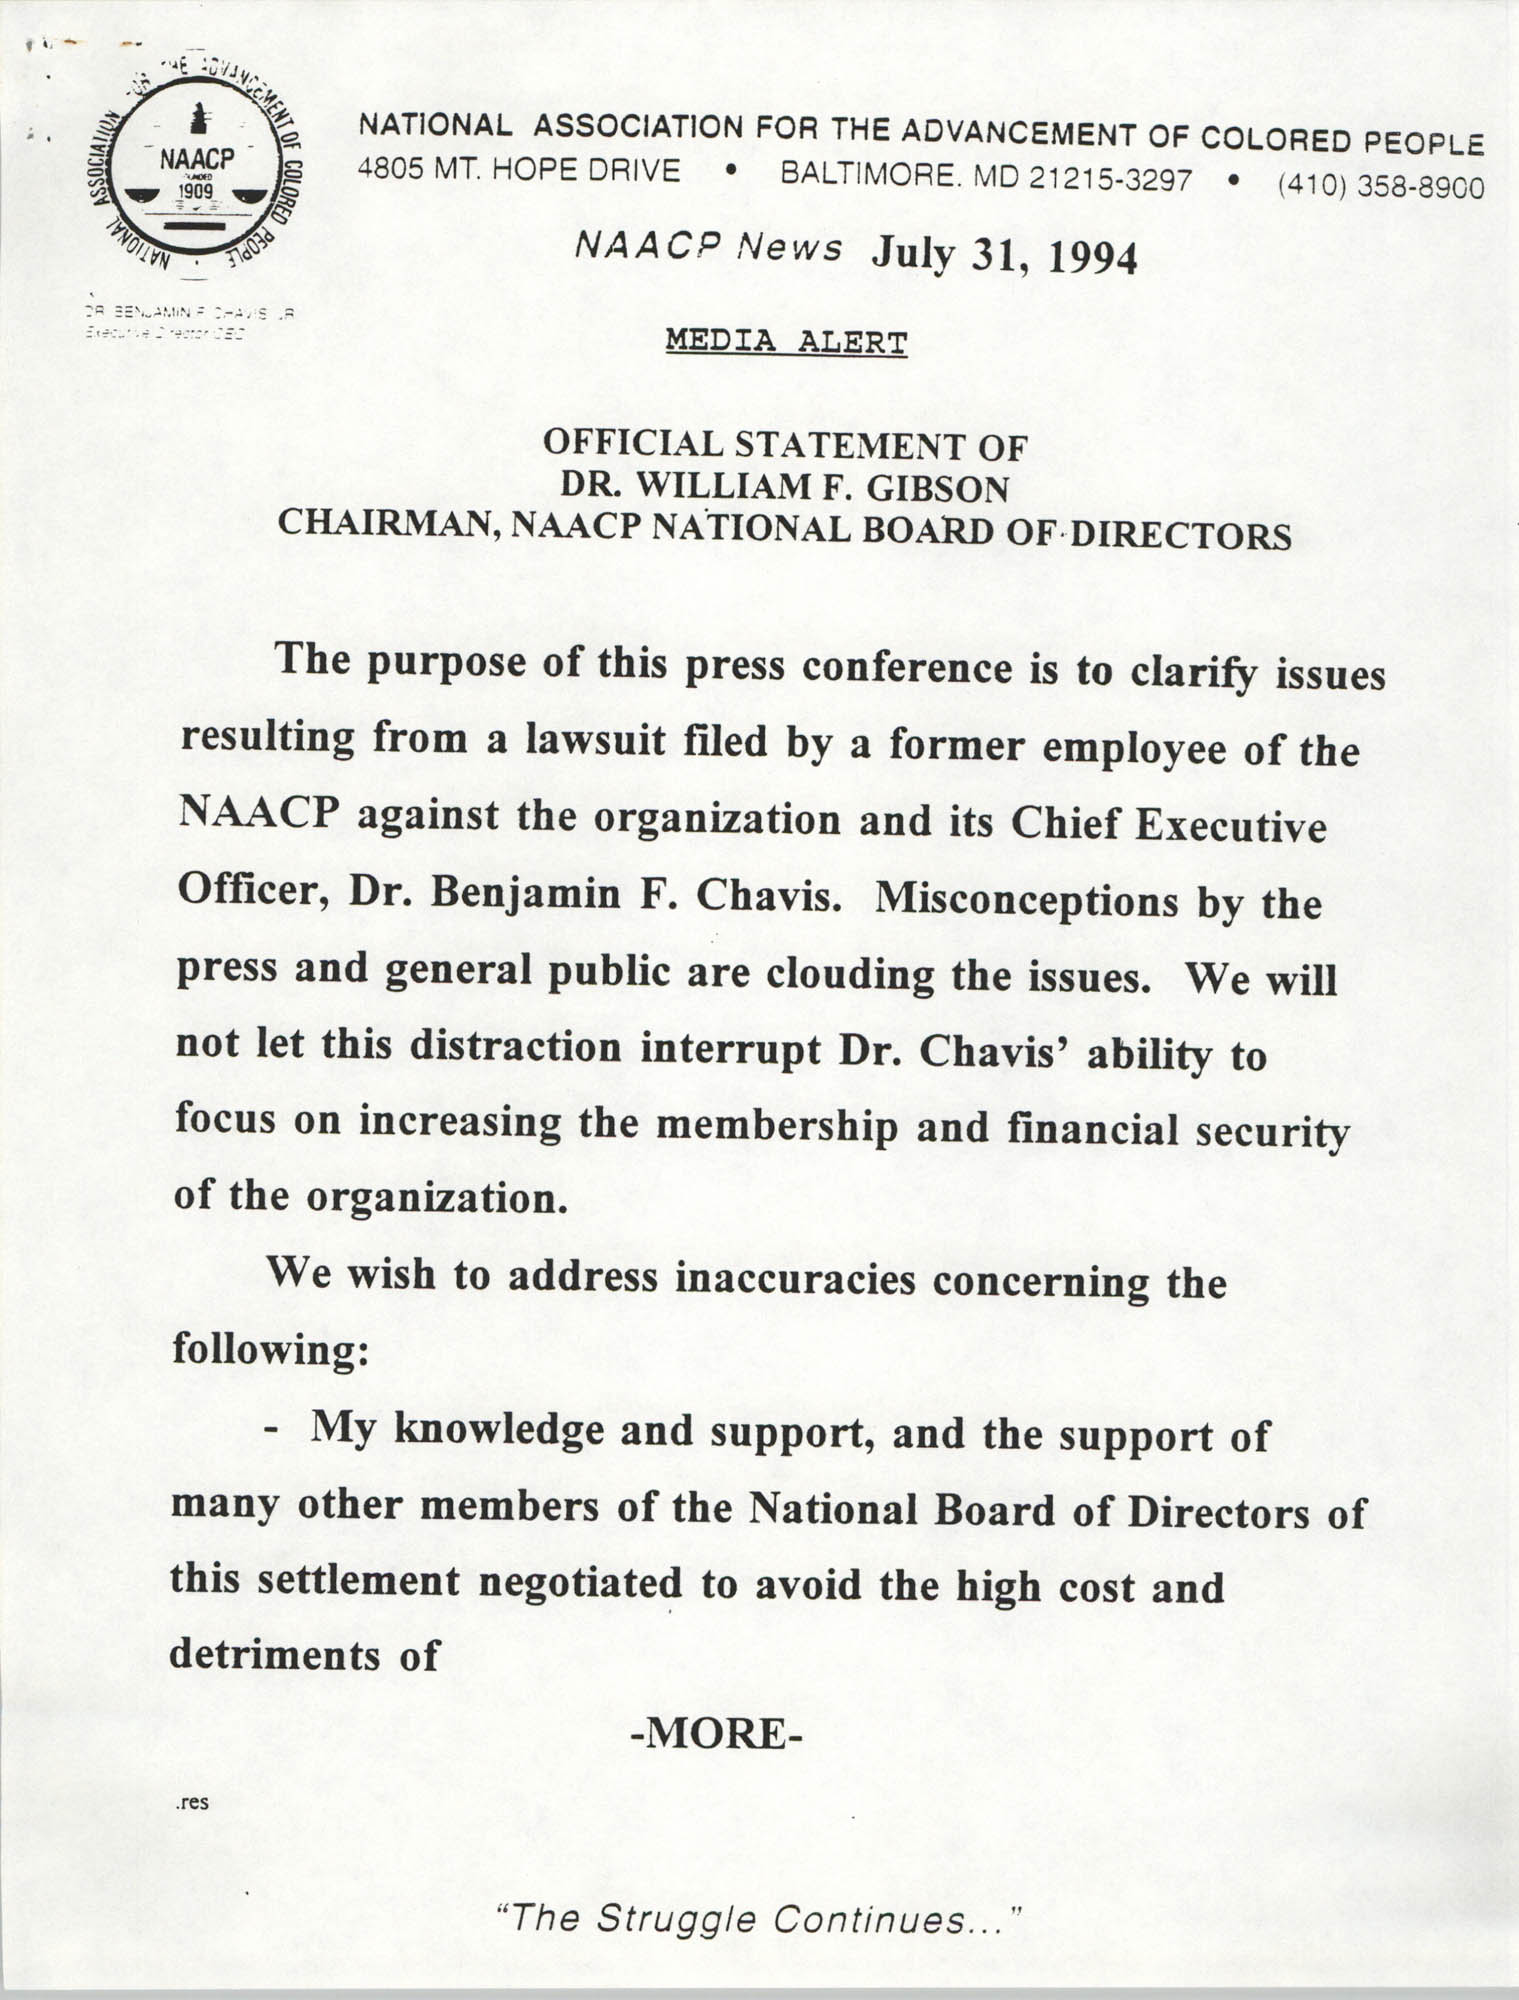 NAACP Media Alert, Official Statement of Dr. William F. Gibson